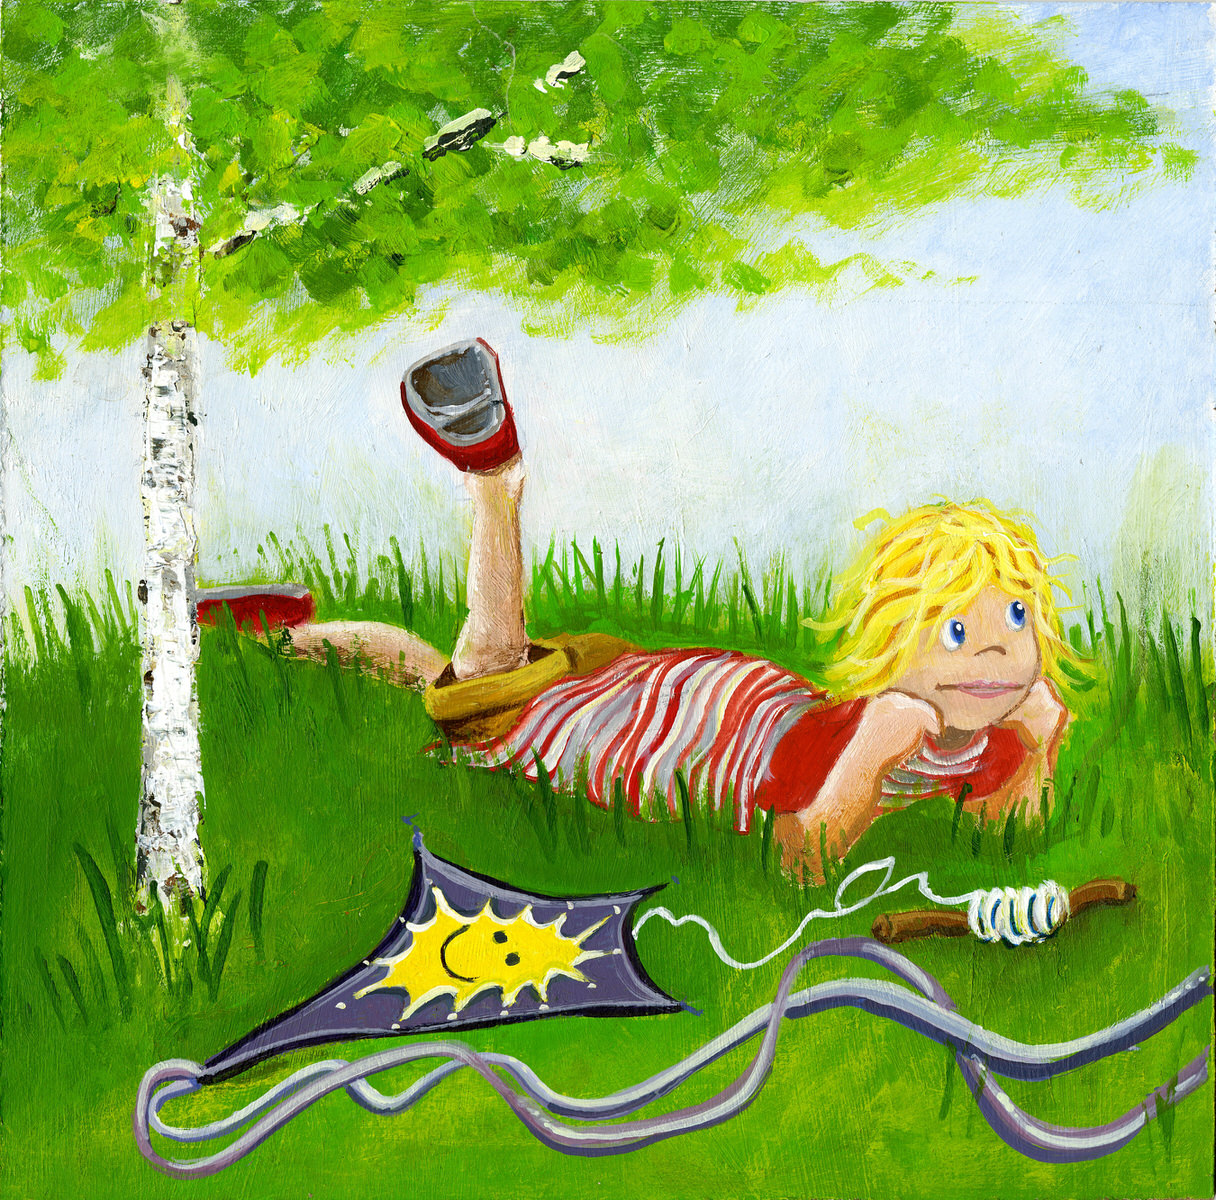 Child laying on the grass from an illustration of the book A Trip Around the Pond